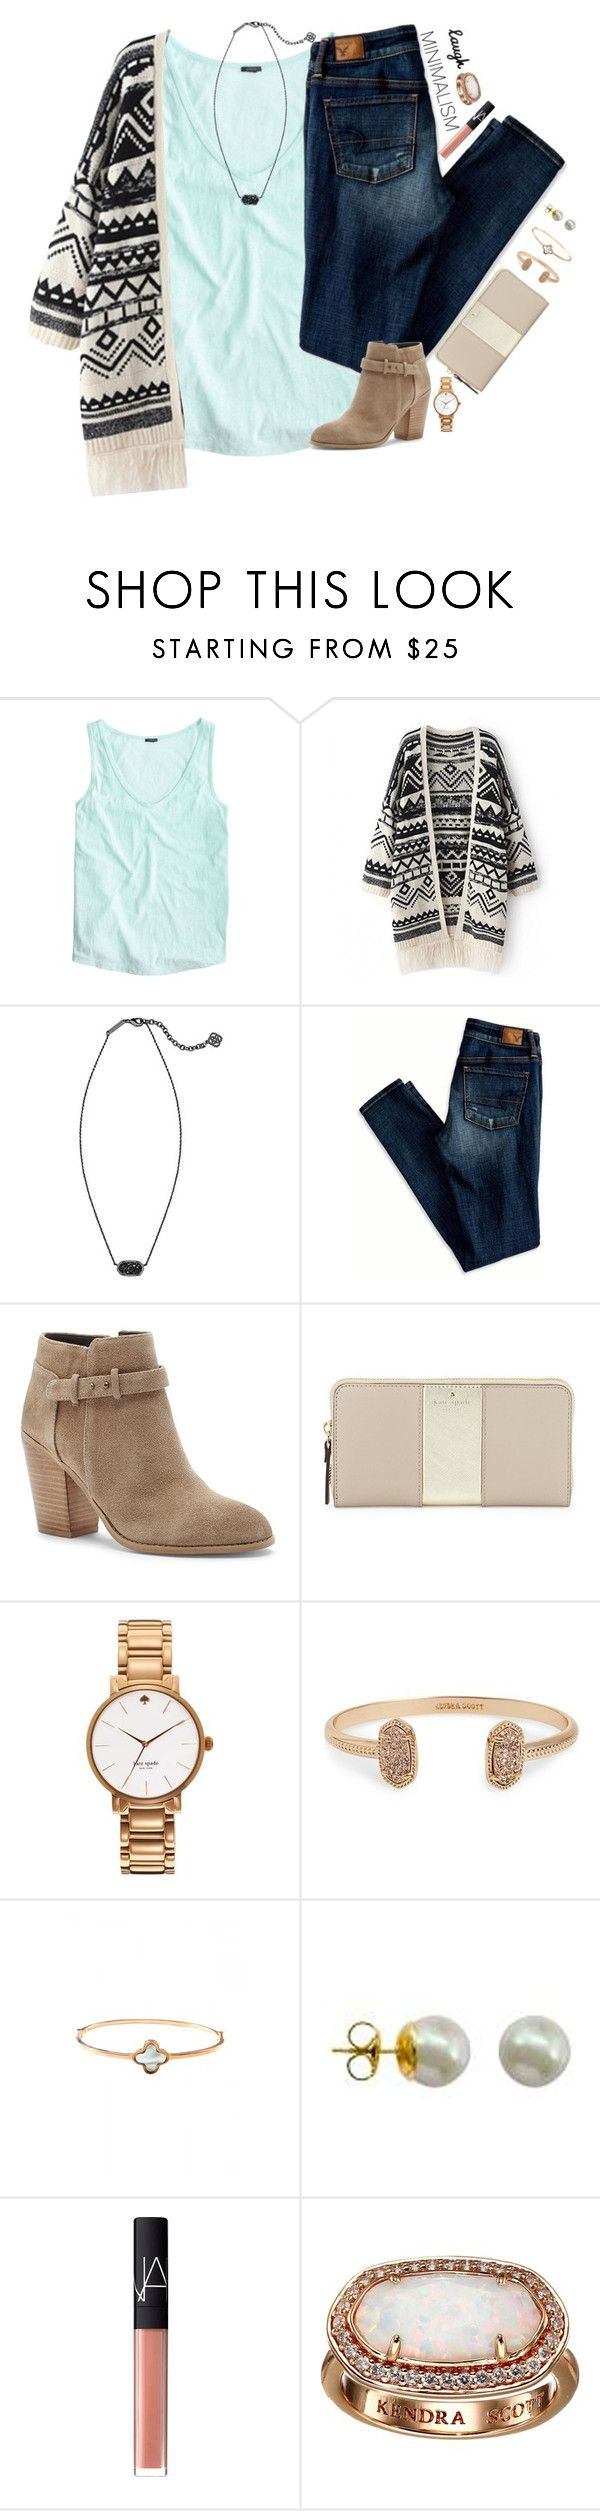 """you are the one that I want."" by kaley-ii ❤ liked on Polyvore featuring J.Crew, Kendra Scott, American Eagle Outfitters, Sole Society, Kate Spade, Majorica and NARS Cosmetics"